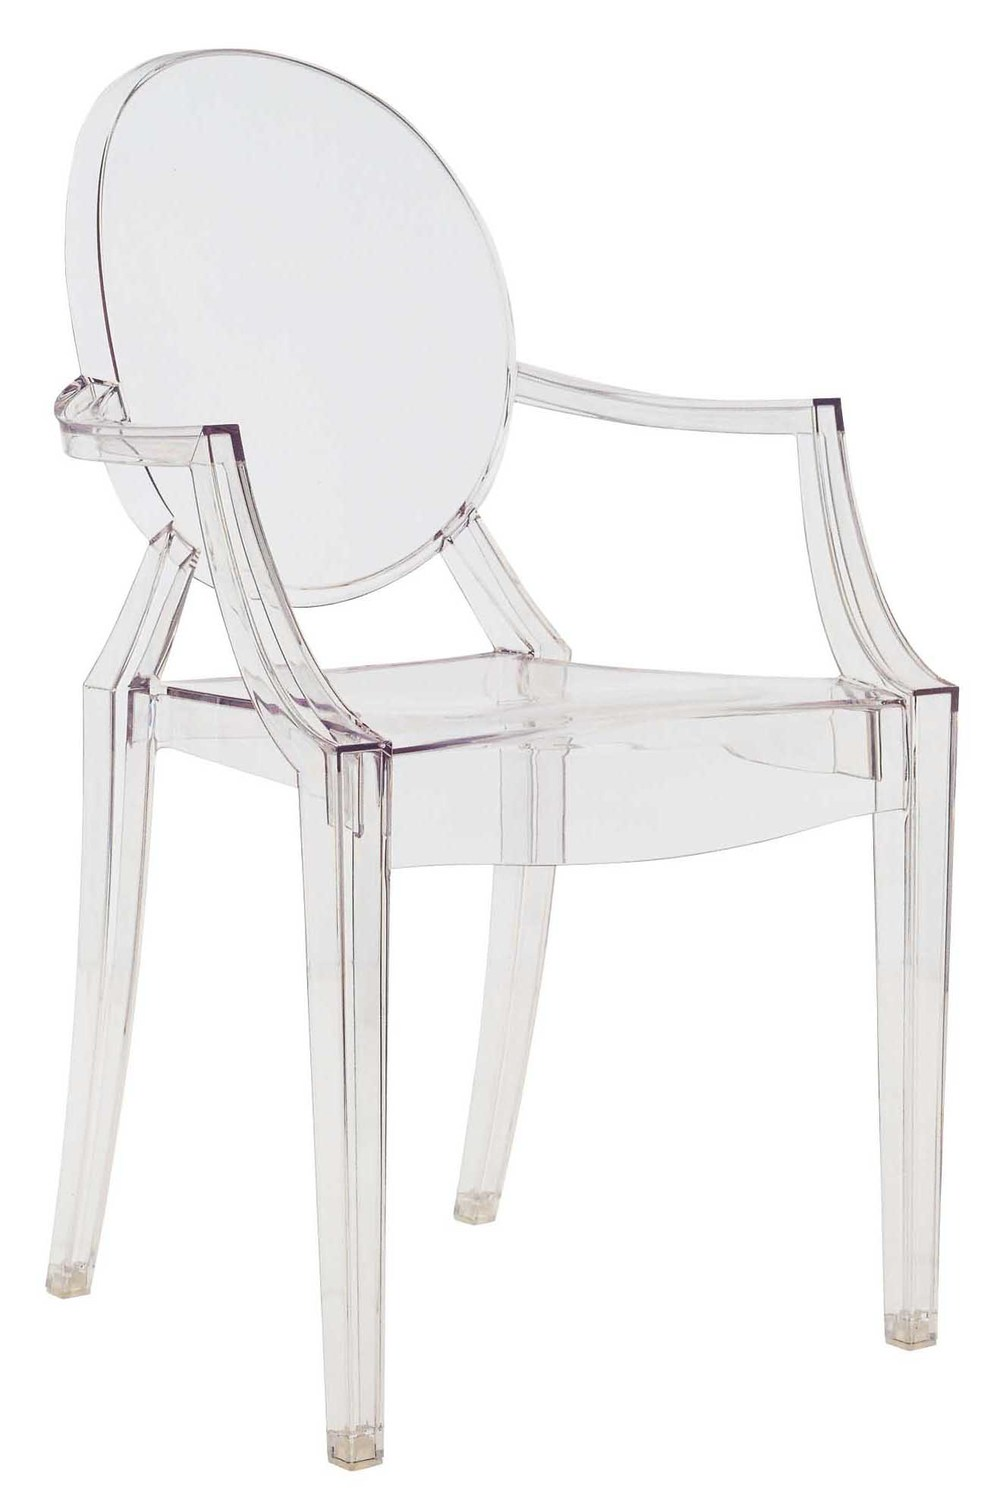 Ghost Chair, designed by Philippe Starck. Photo: Casa Italia.